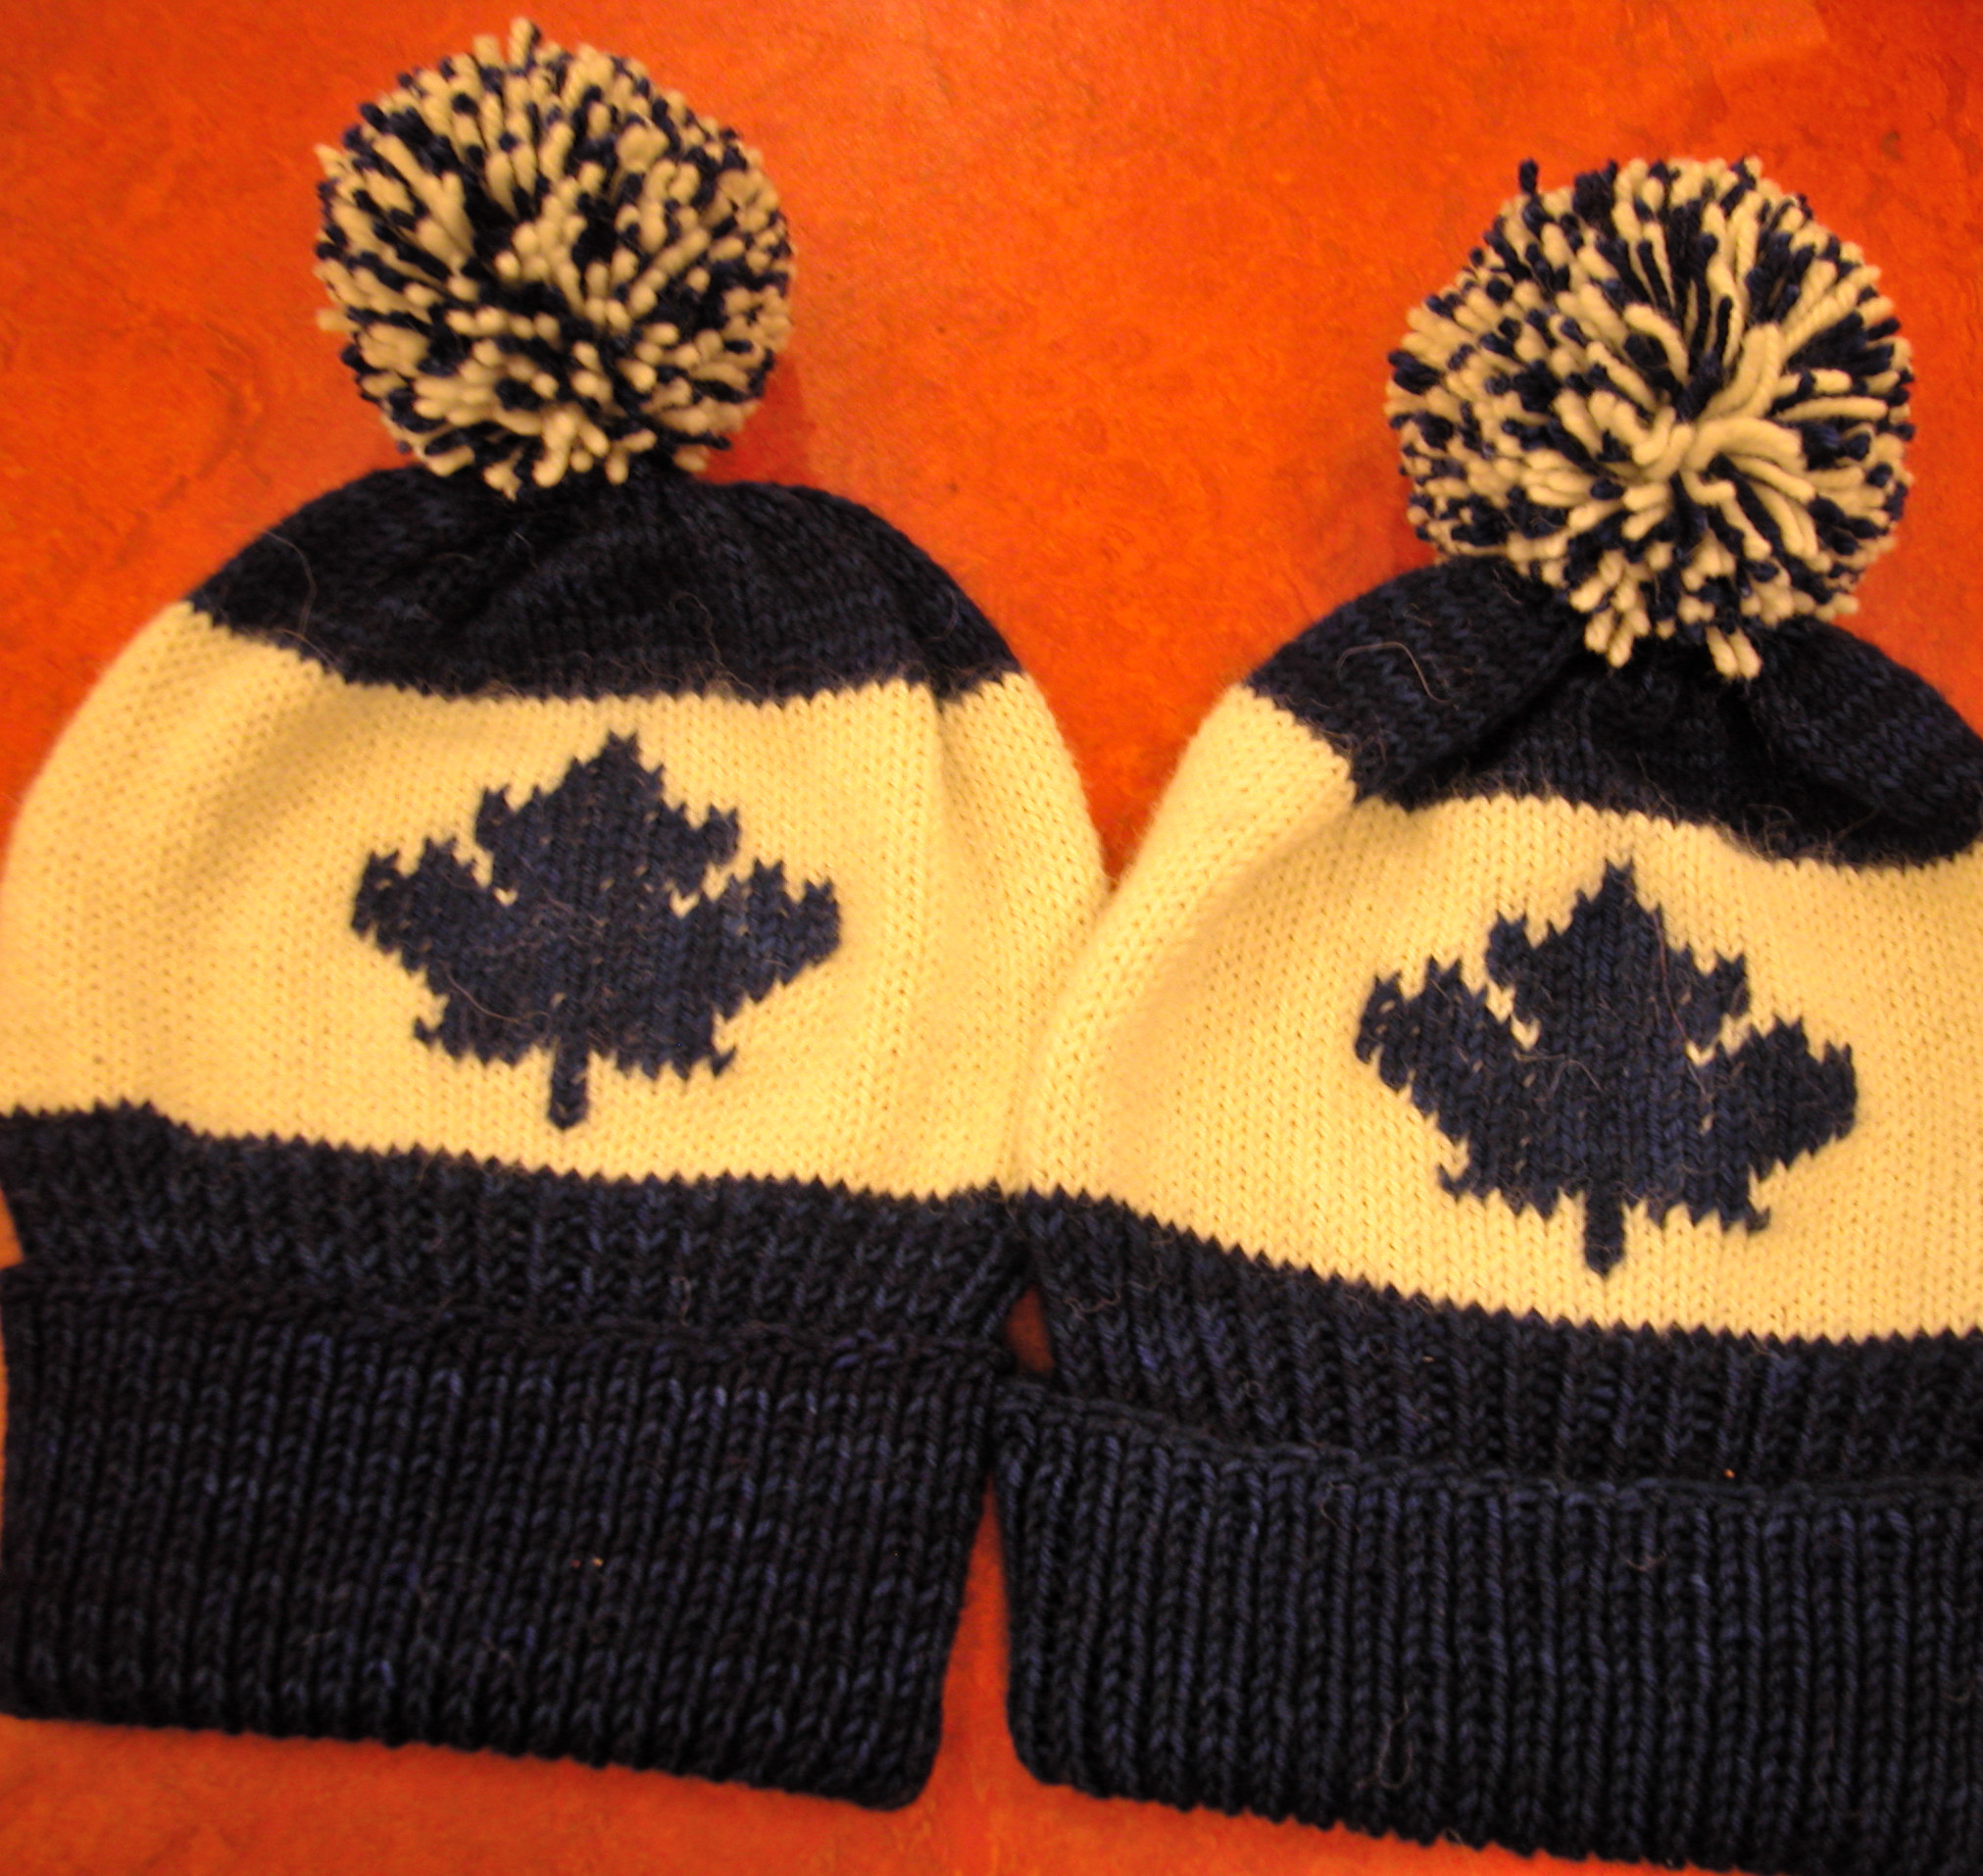 Knit Maple Leaf Pattern Free : maple leafs hat the knit cafe